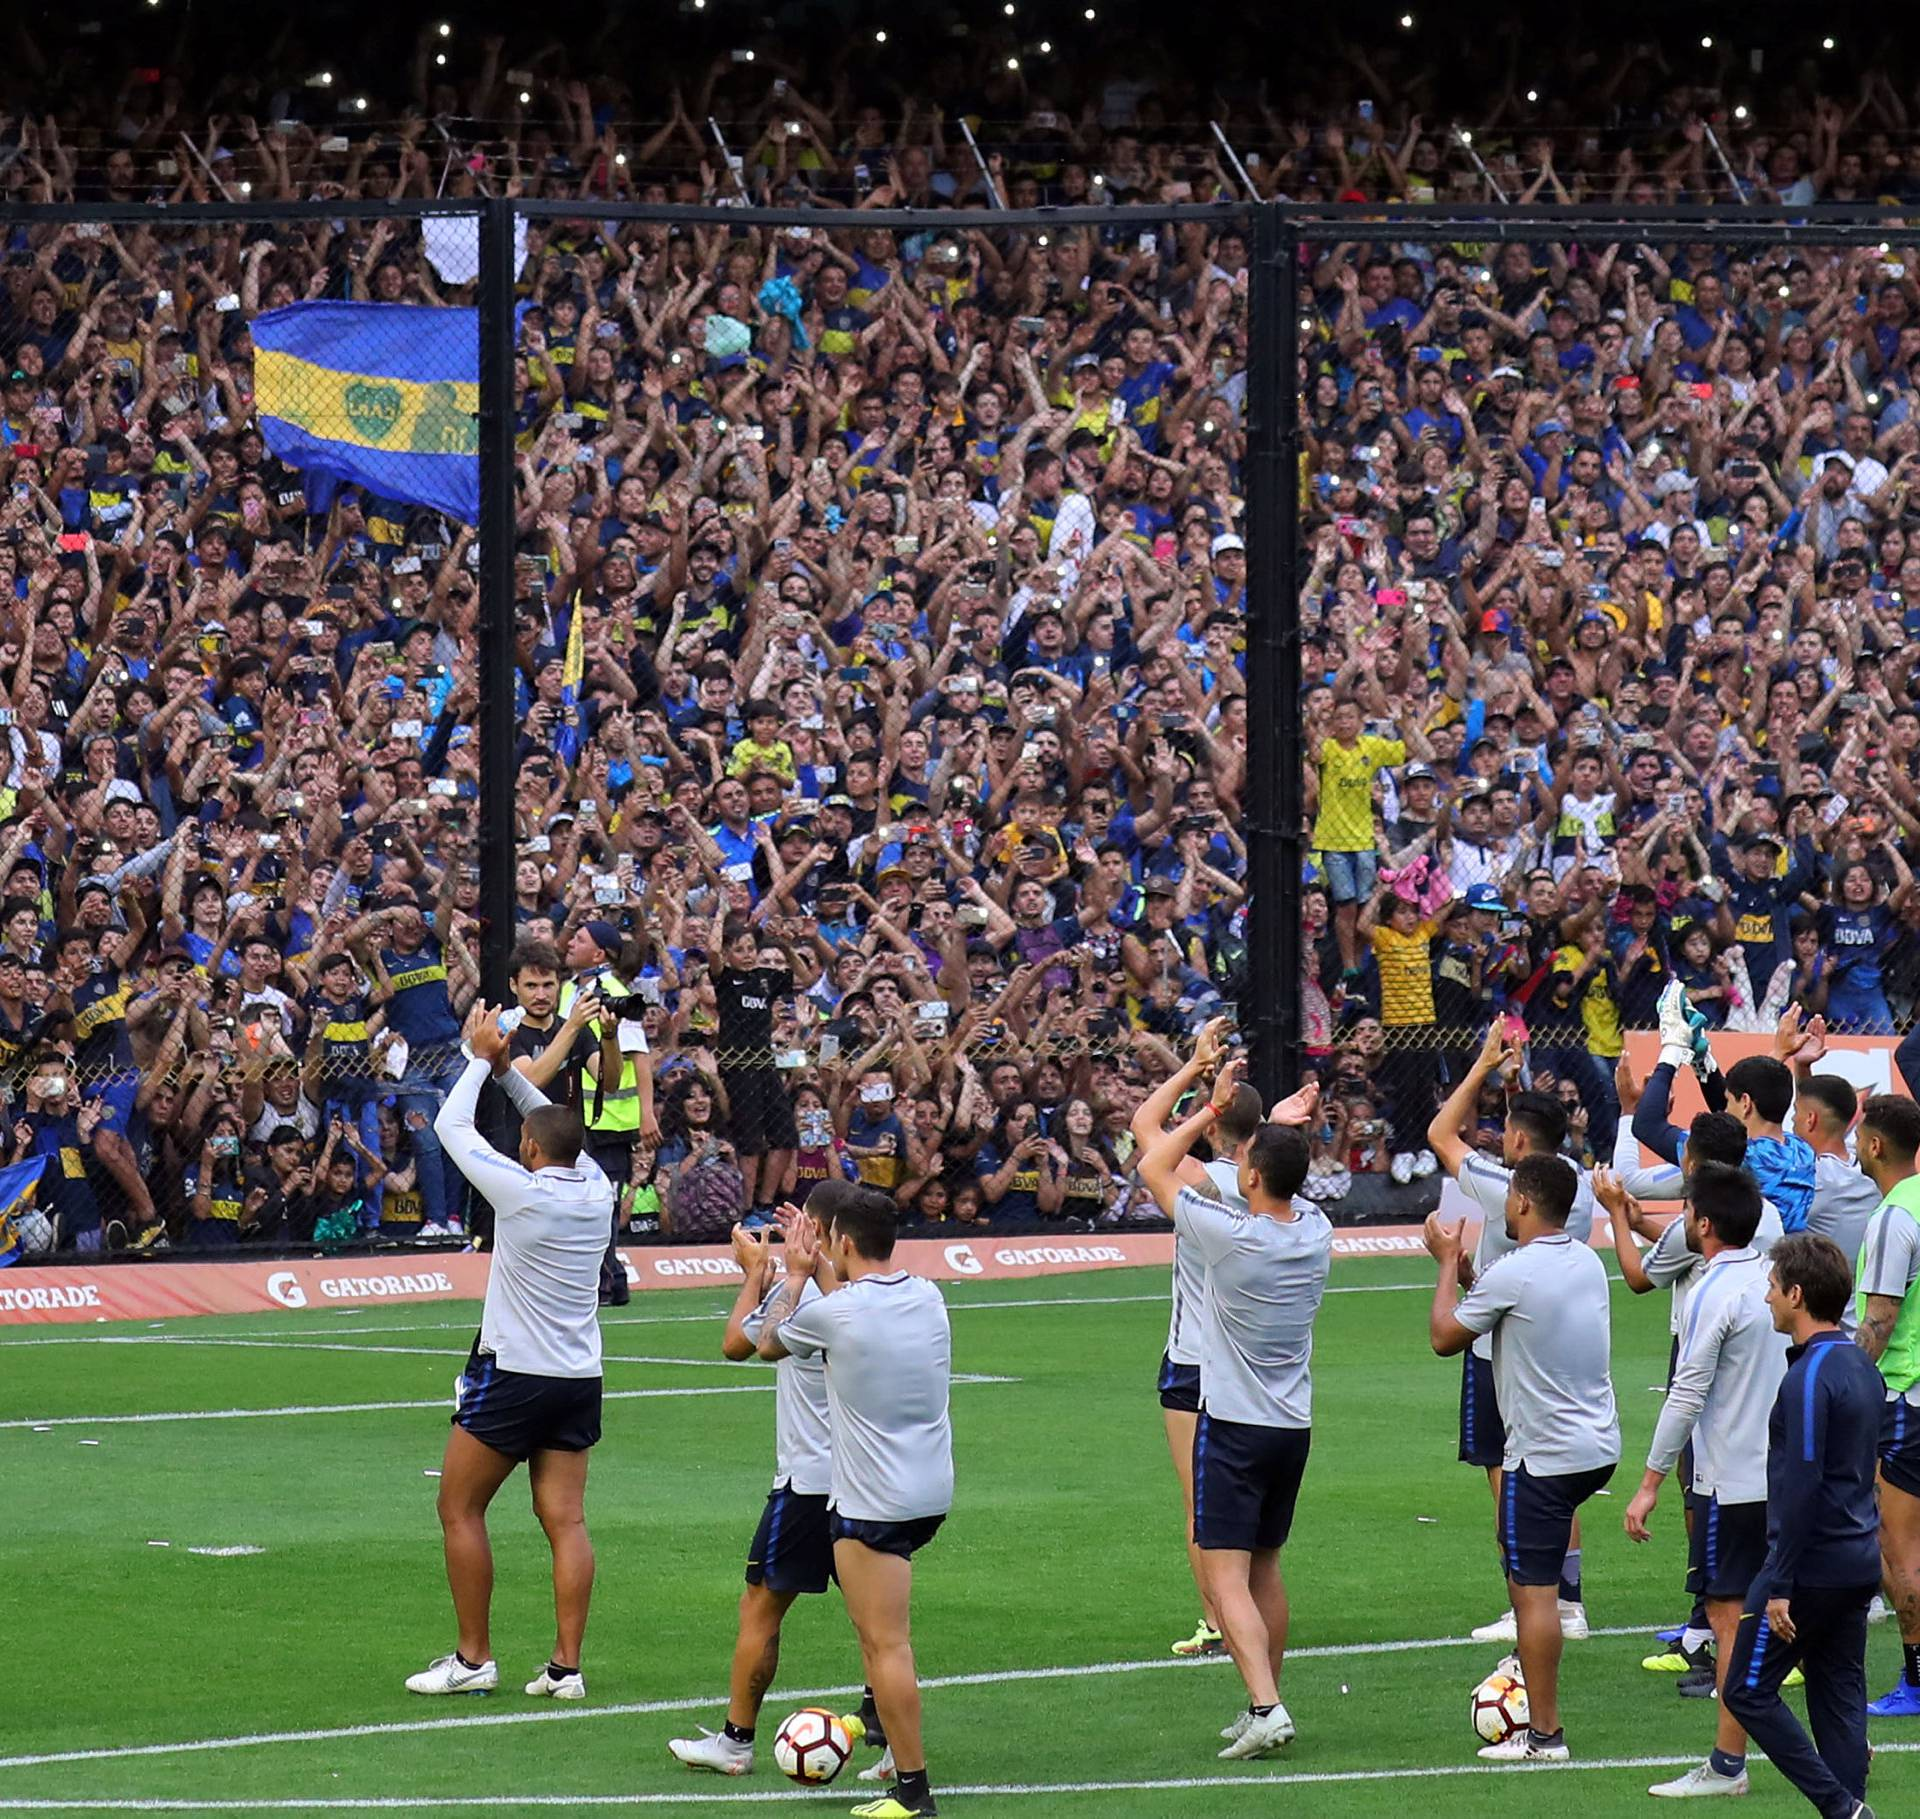 Boca Juniors' players acknowledge supporters during a training session ahead of their second leg Copa Libertadores final match against River Plate in Buenos Aires